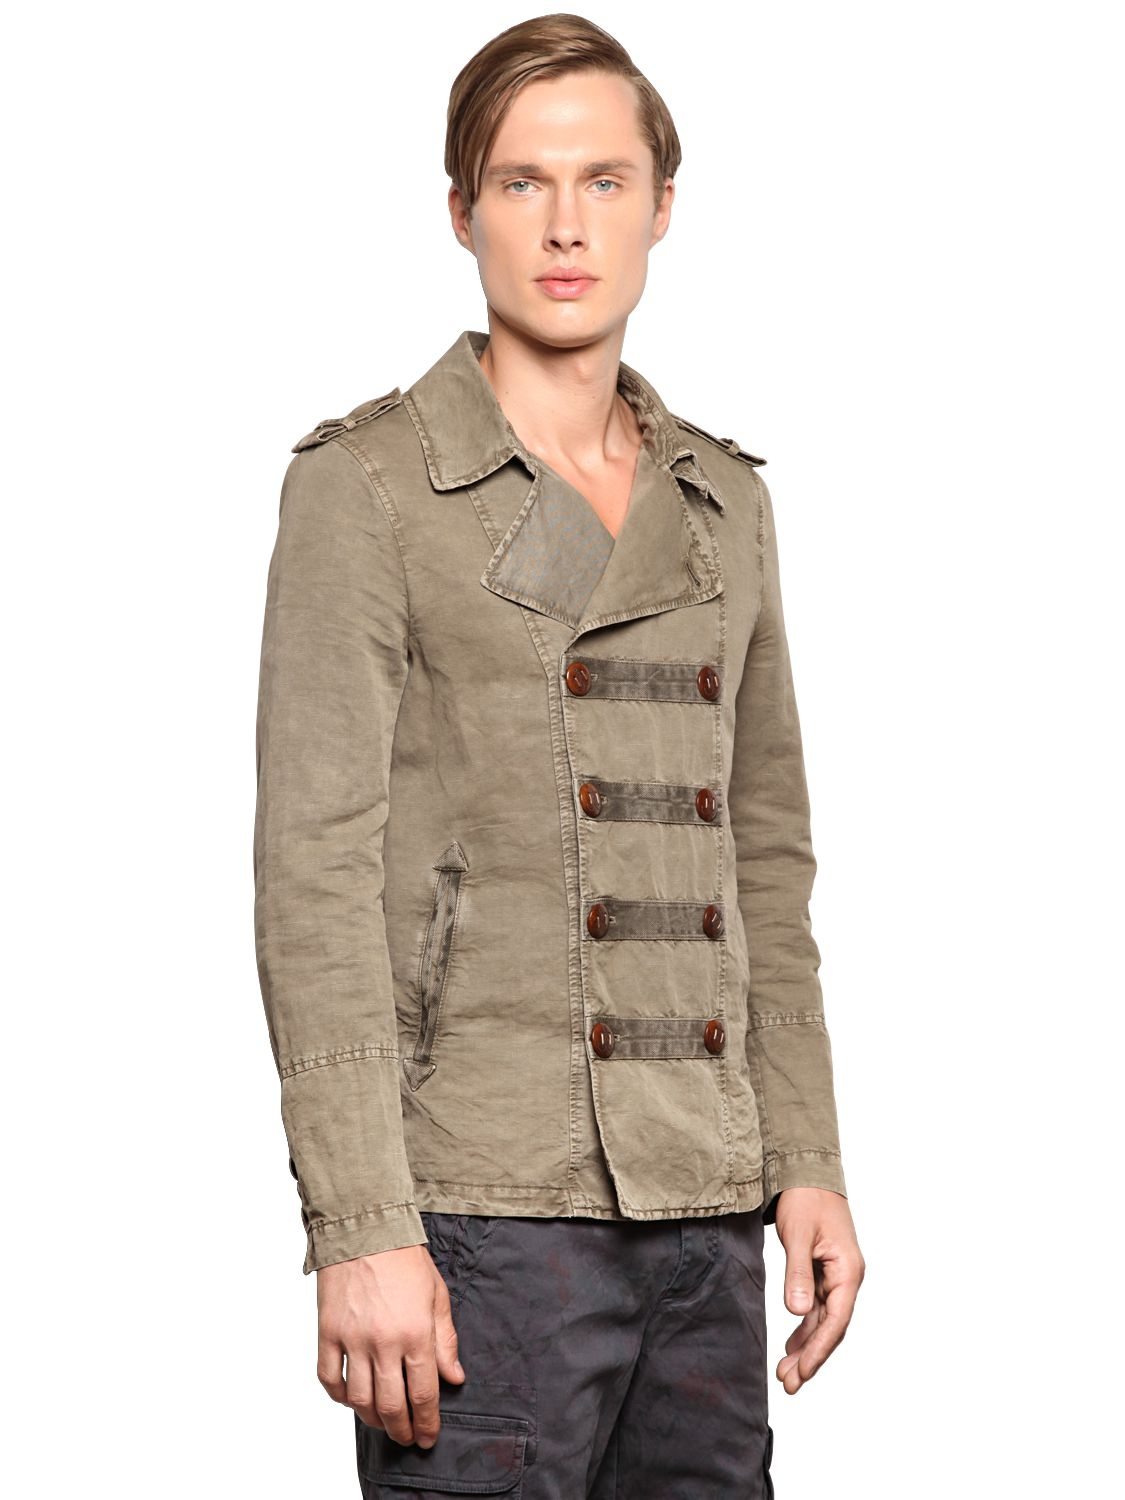 Corto Maltese Linen Cotton Canvas Colonial Jacket In